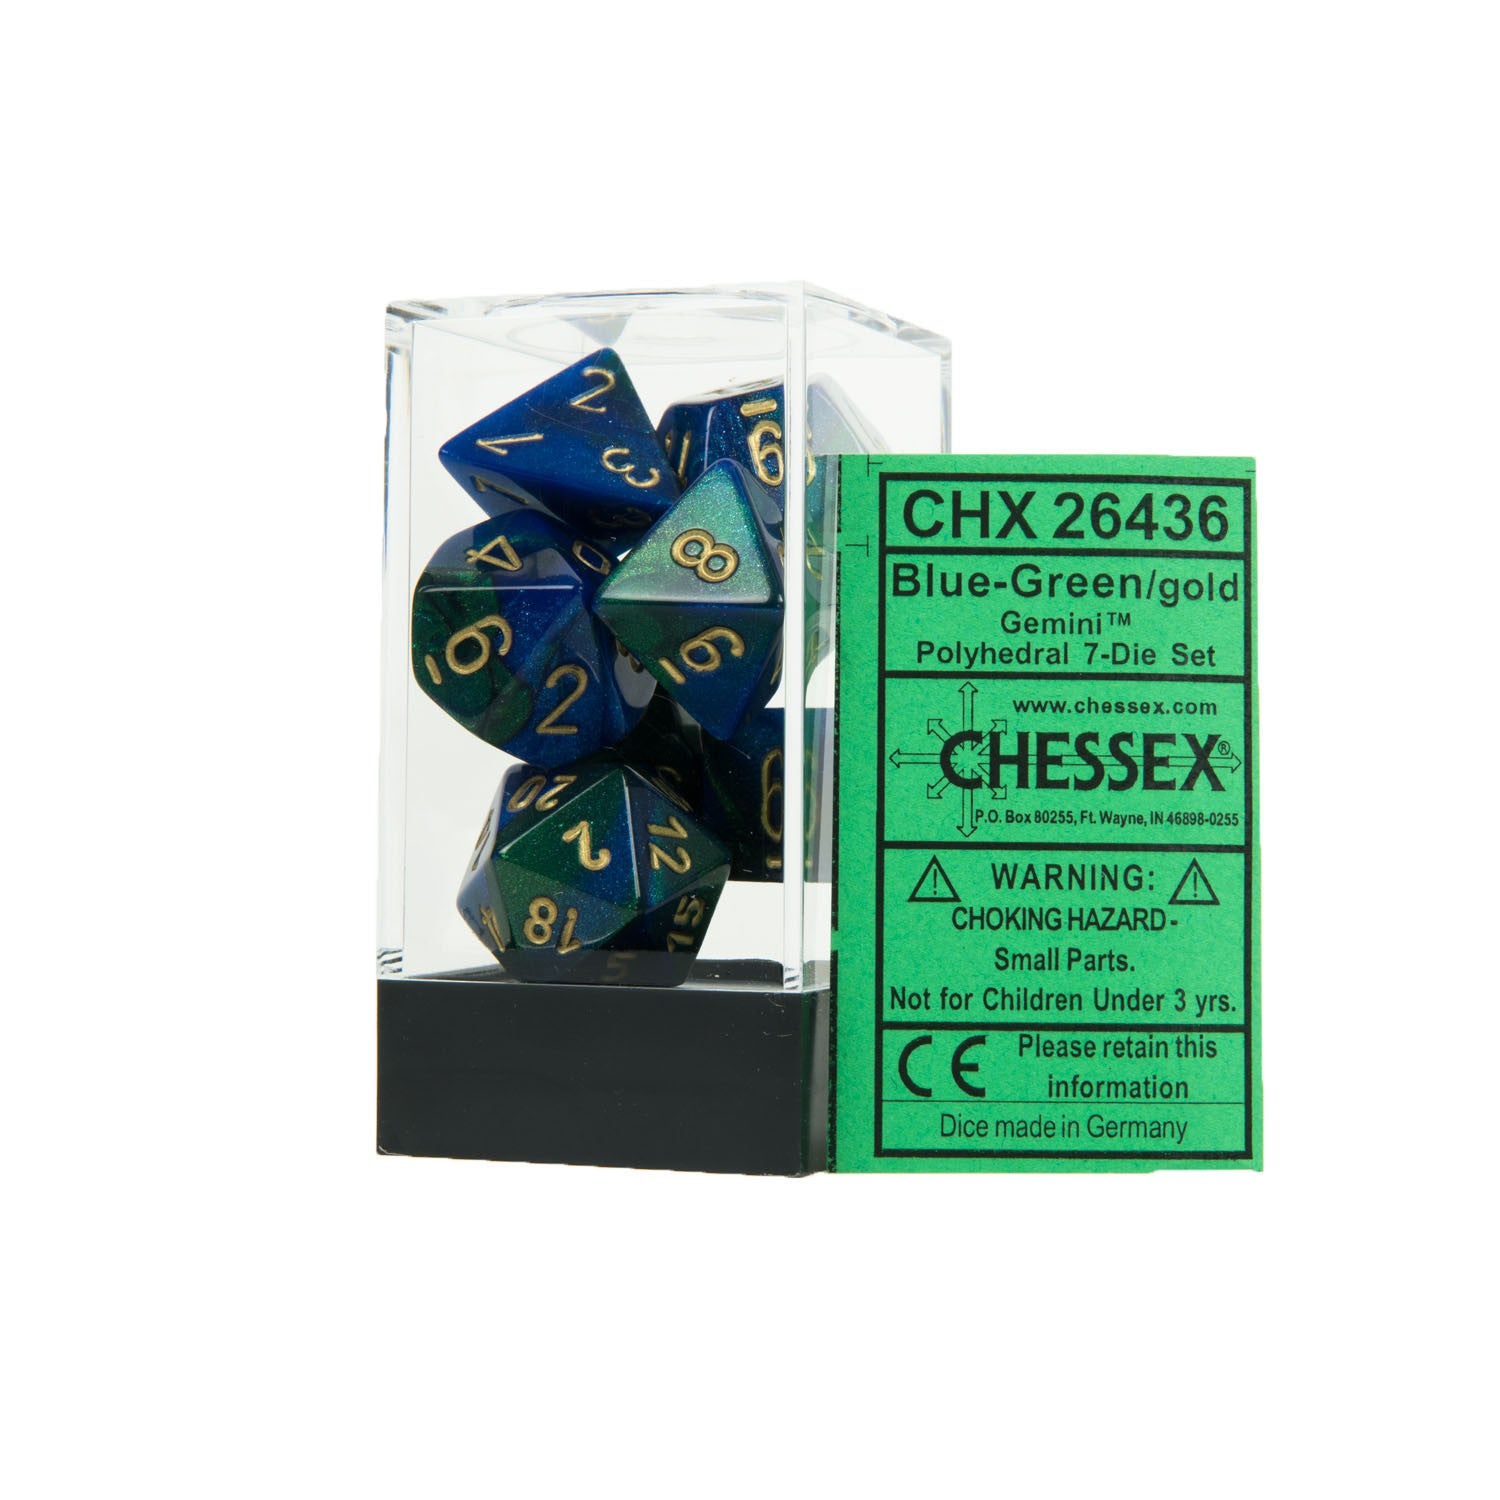 Chessex CHX26436 Blue-Green w/gold Gemini™ Polyhedral Dice Set